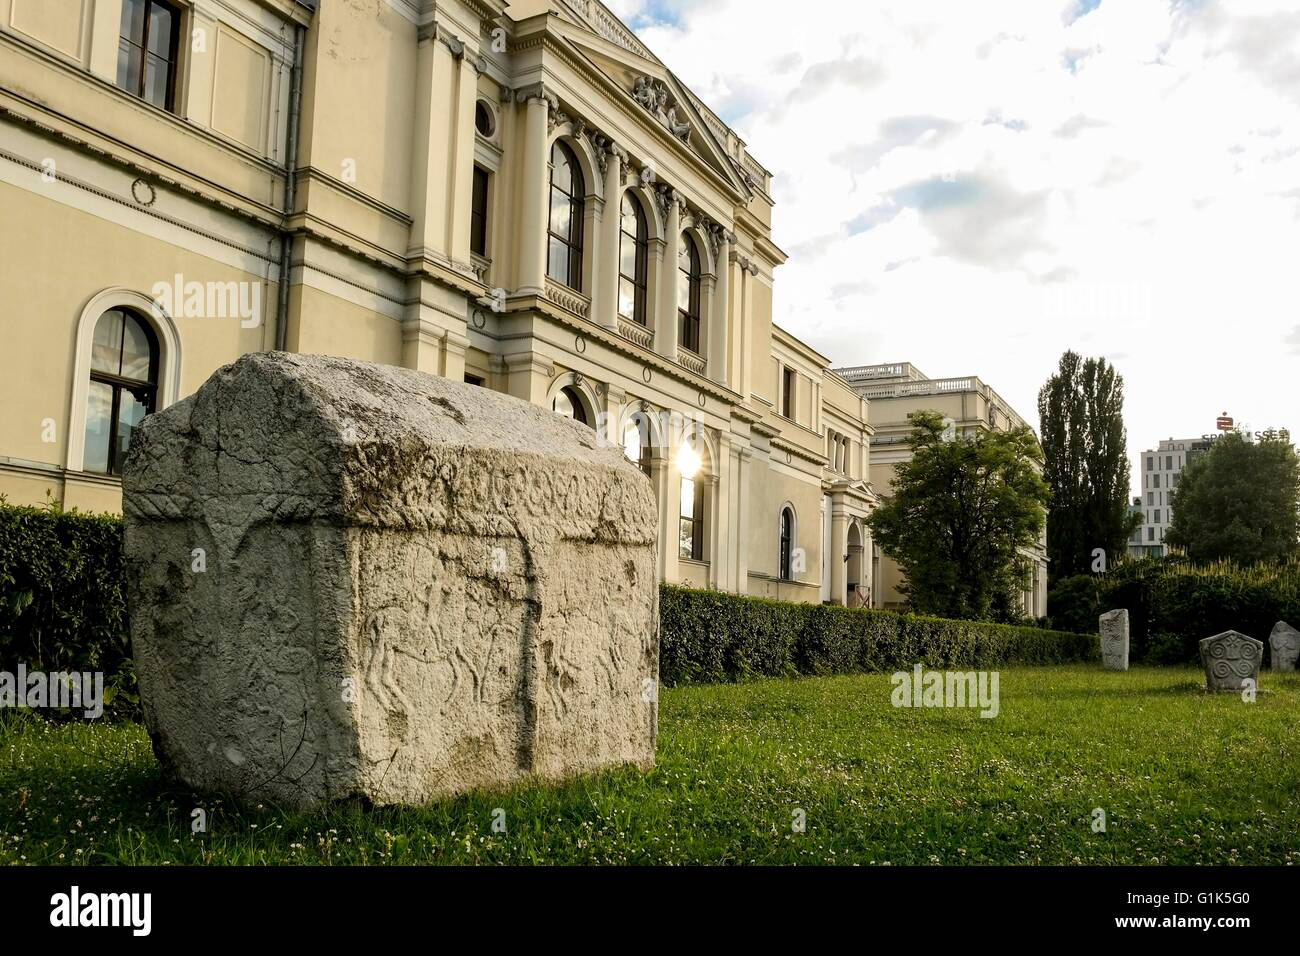 Gravestone showing horseman in front of the National Museum of Bosnia and Herzegovina. - Stock Image